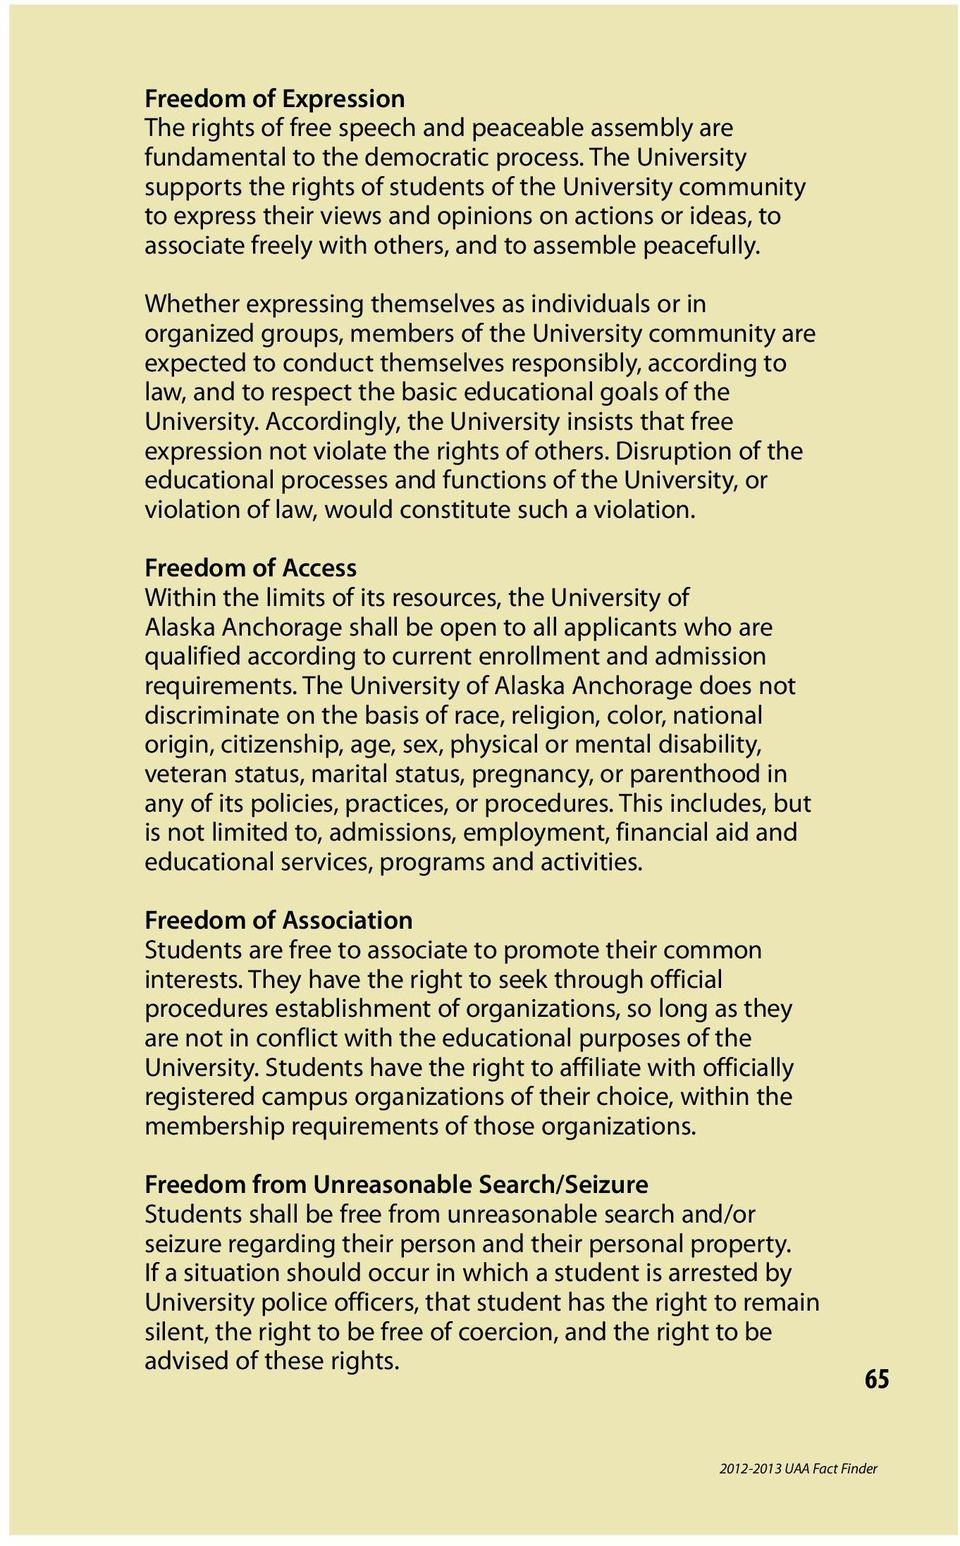 Whether expressing themselves as individuals or in organized groups, members of the University community are expected to conduct themselves responsibly, according to law, and to respect the basic